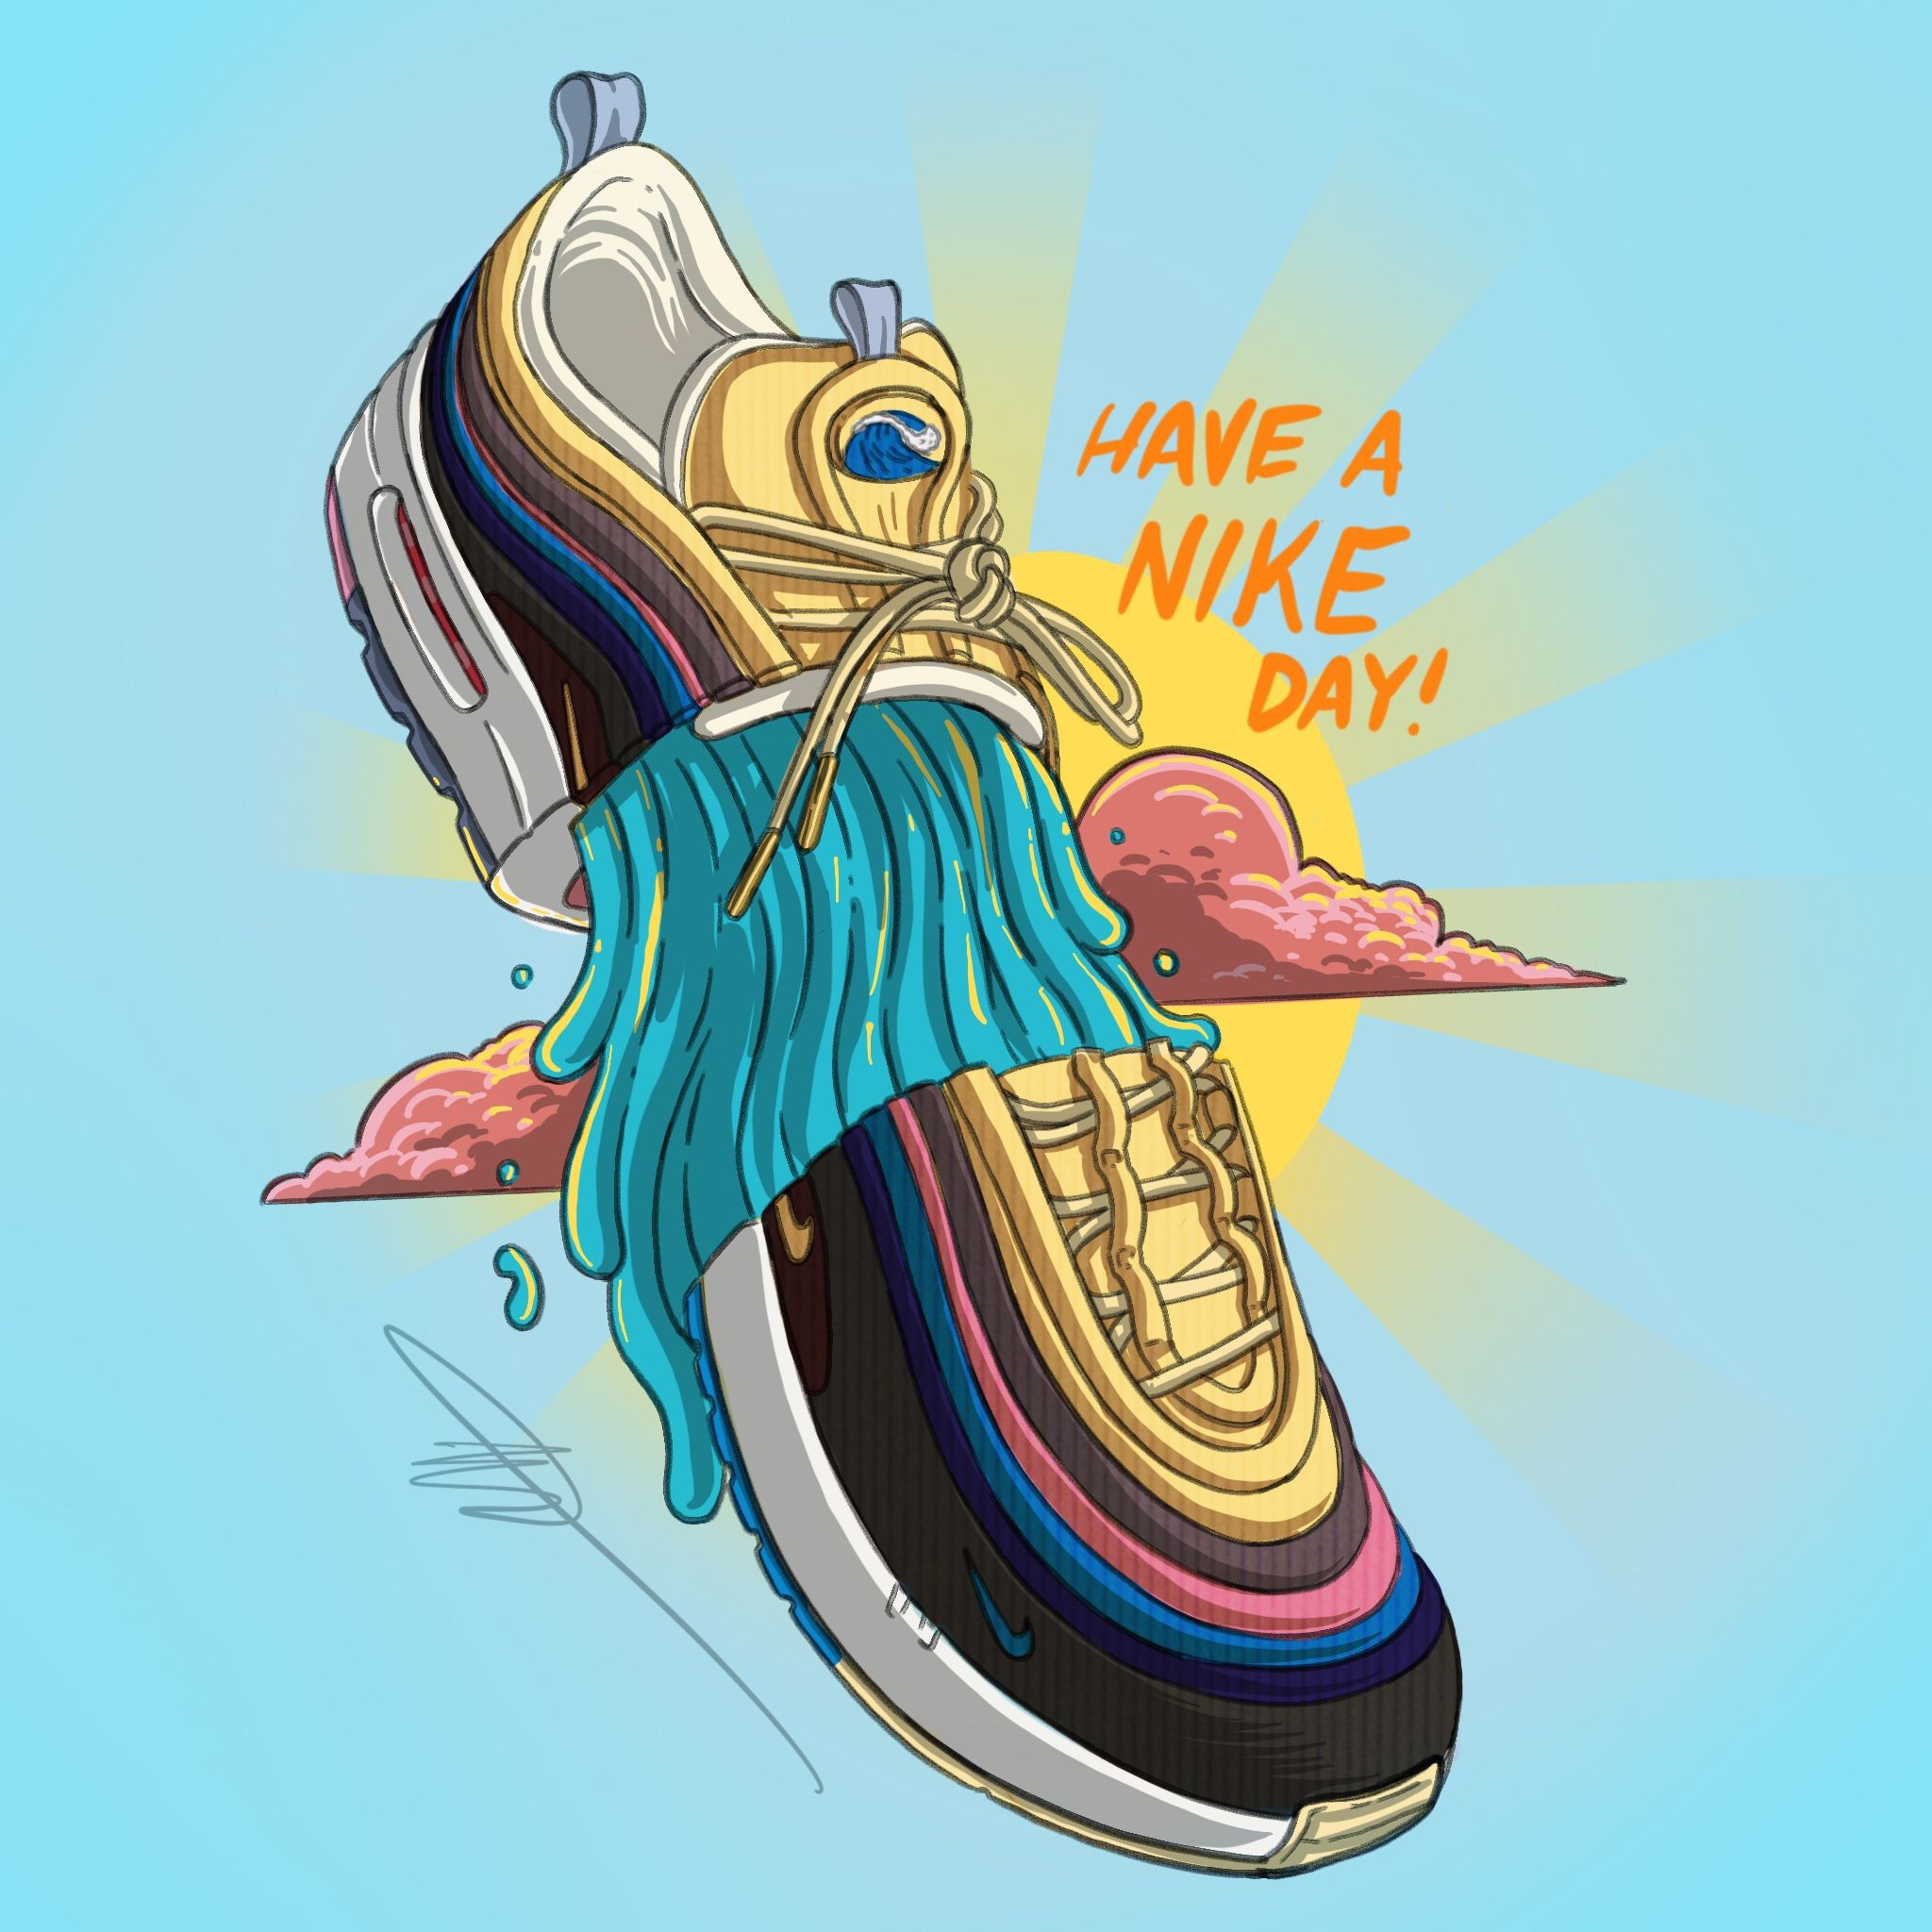 Nike Air Max 97 X 1 Sean Wotherspoon Vote Forward Gdz Merch2